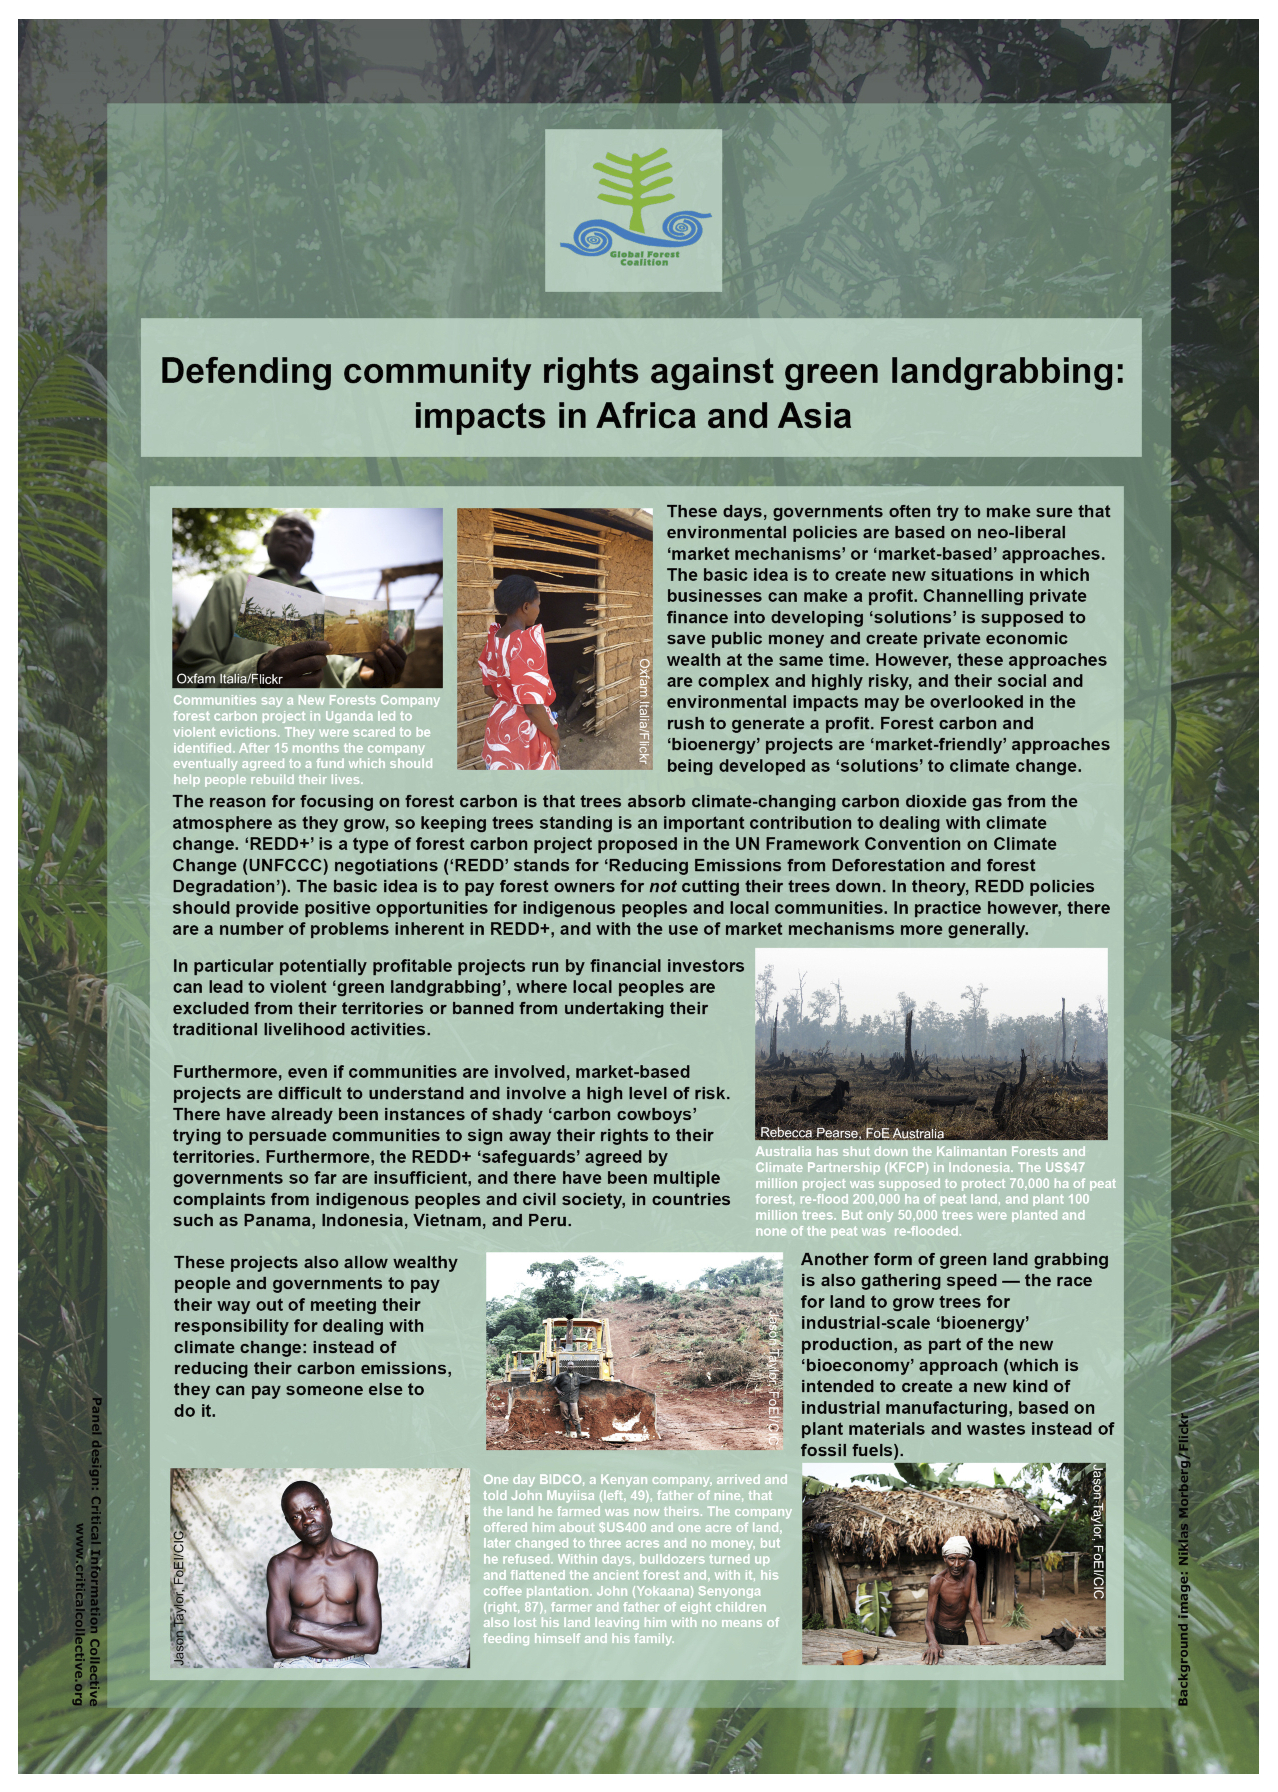 5 GFC:CIC green land grabbing panels A4 to view online (dragged)